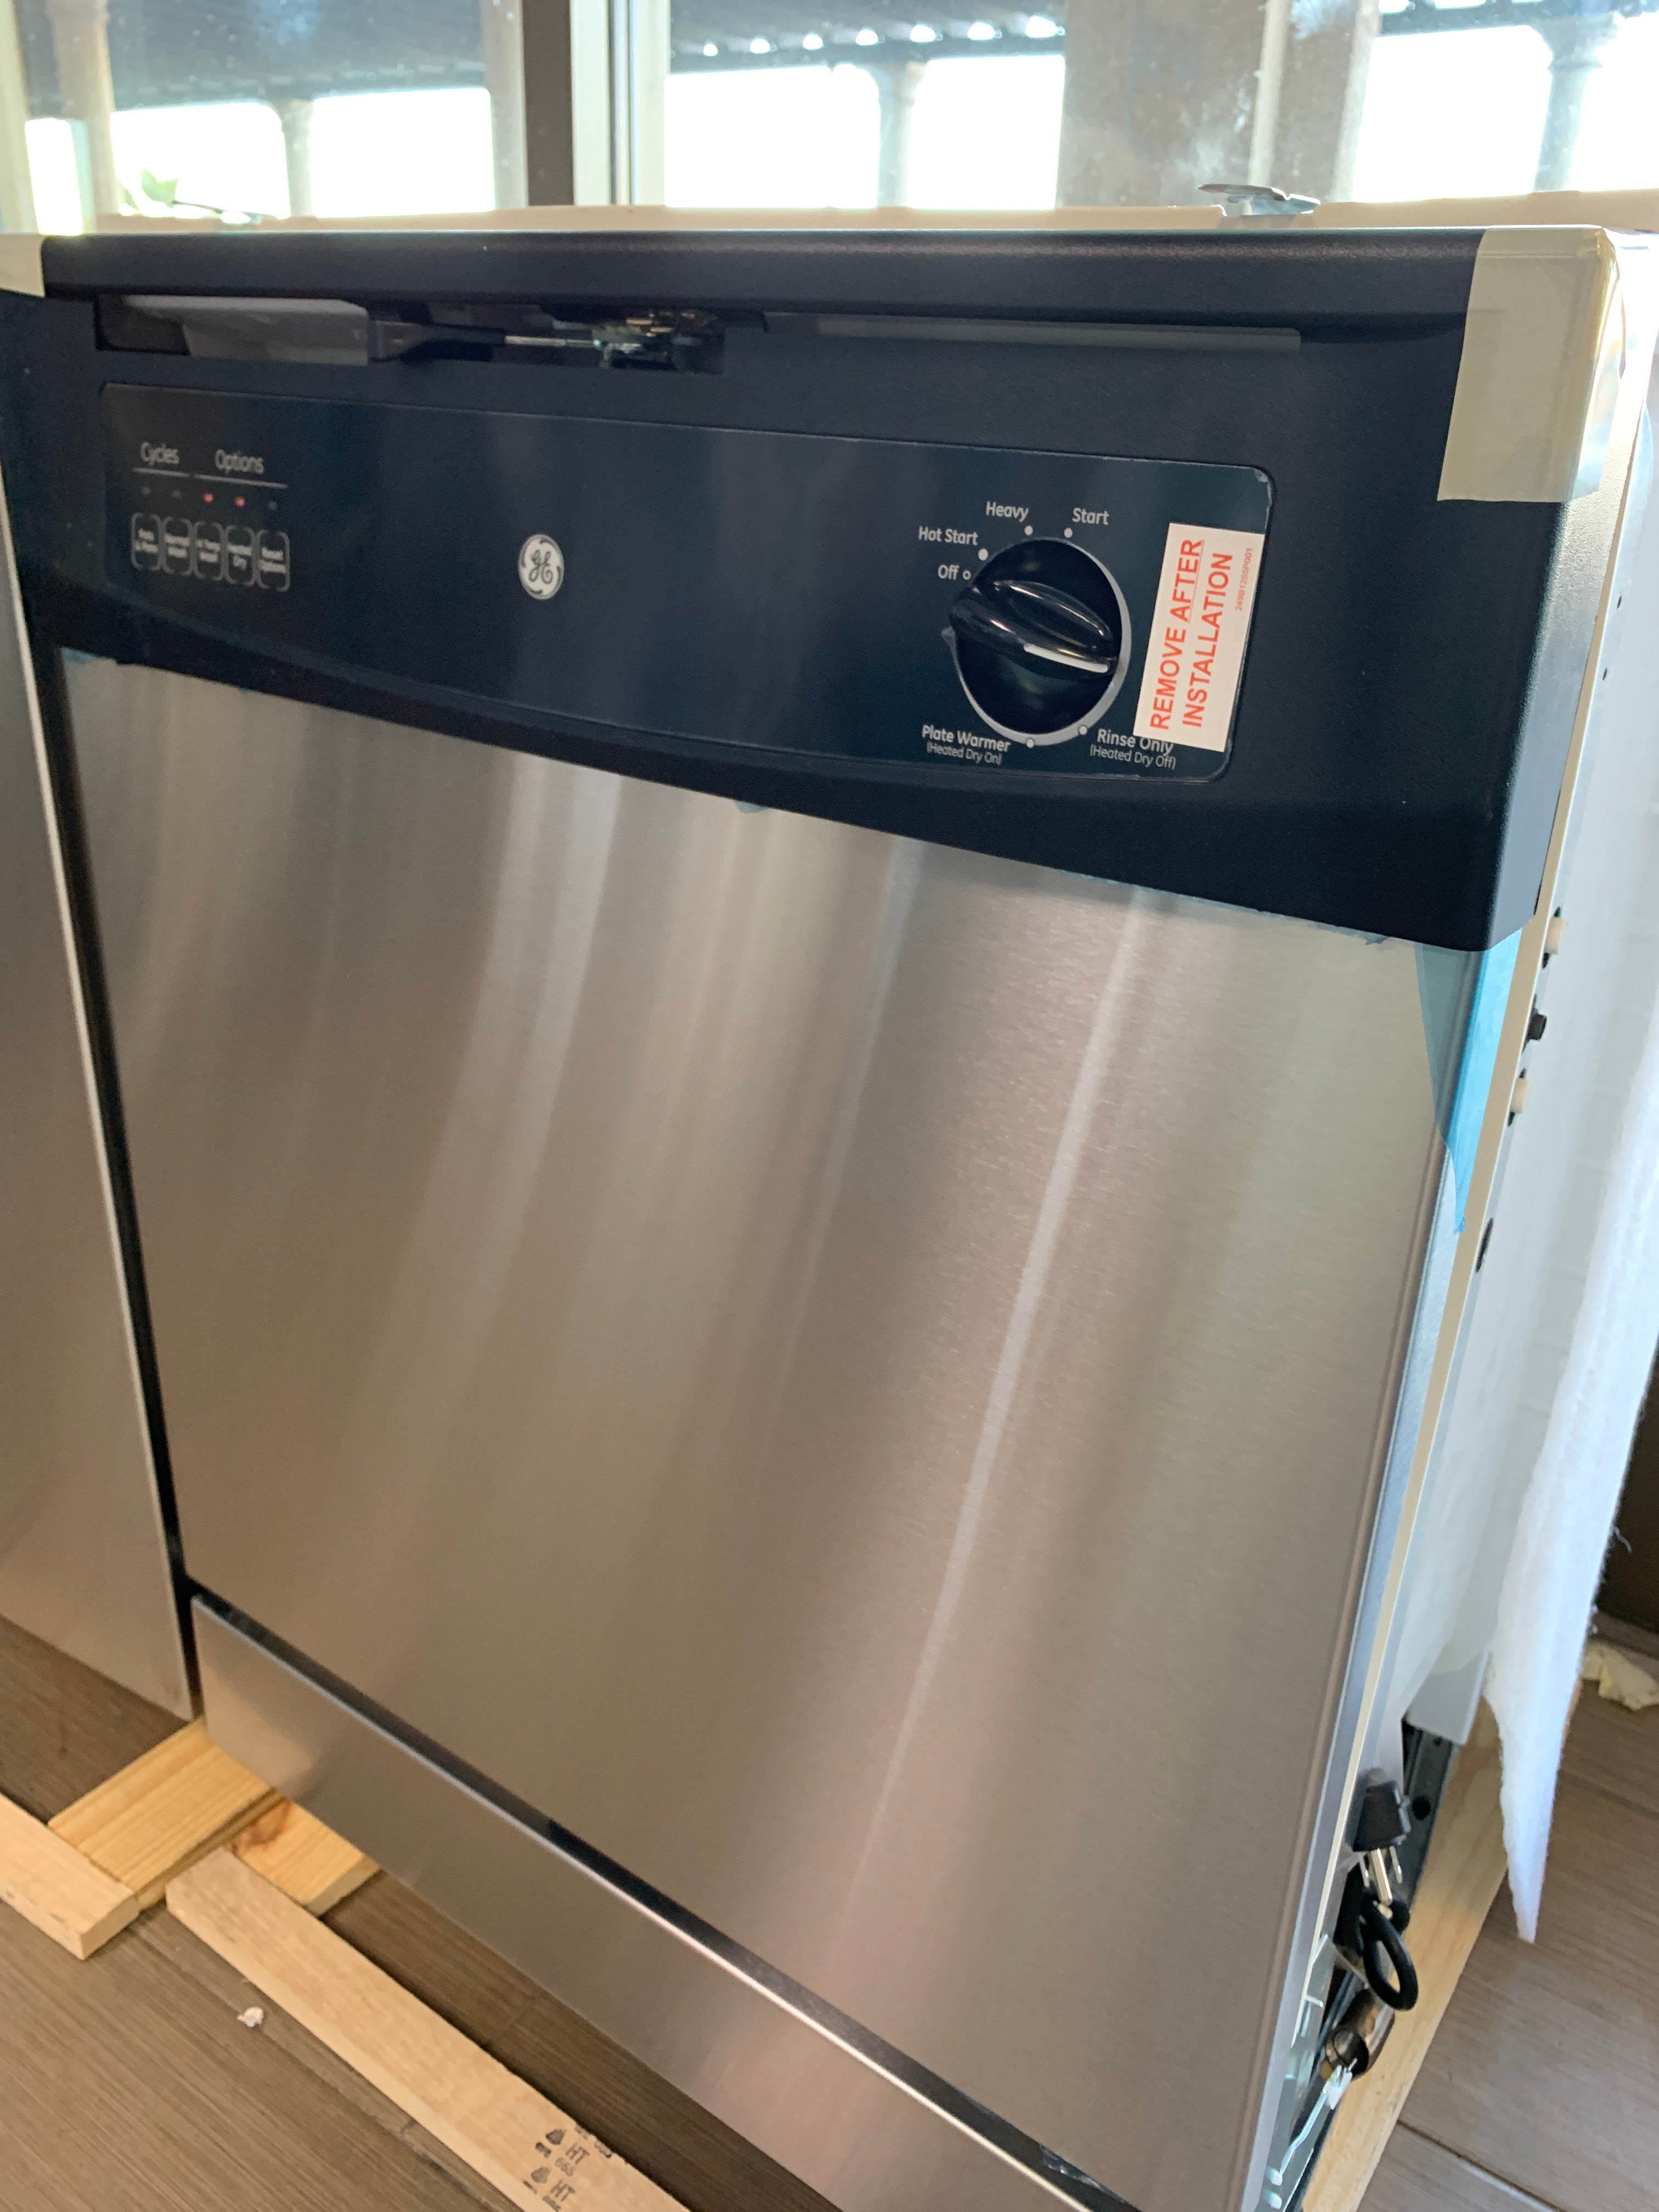 GE Front Control Dishwasher in Stainless Steel, 62 dBA Model GSD3361KSS